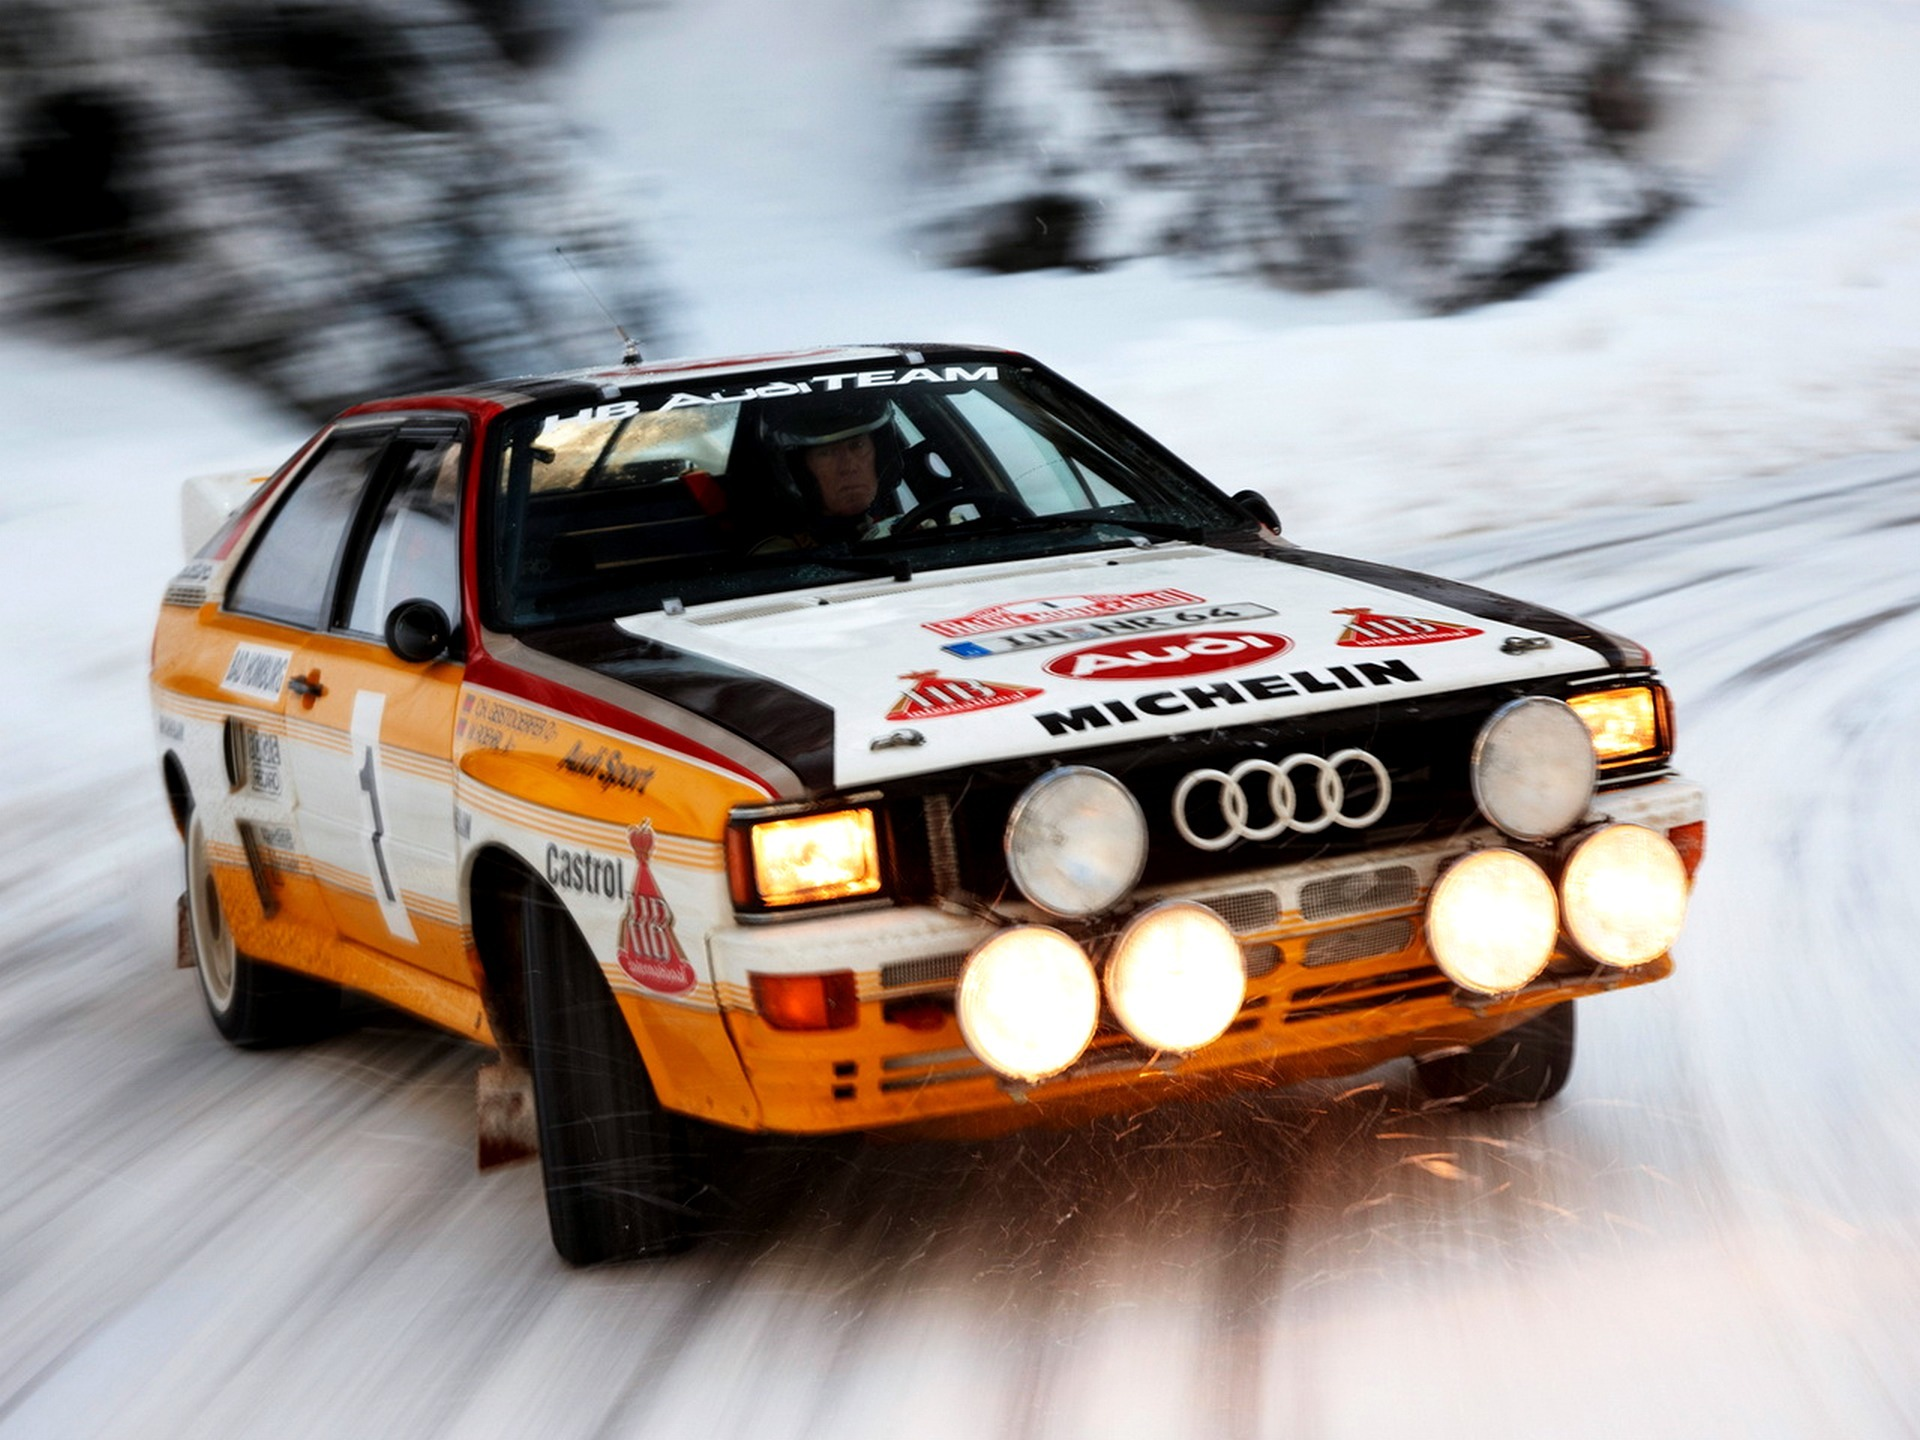 Wallpapers car wallpapers audi quattro group b rally car snow 1920x1440